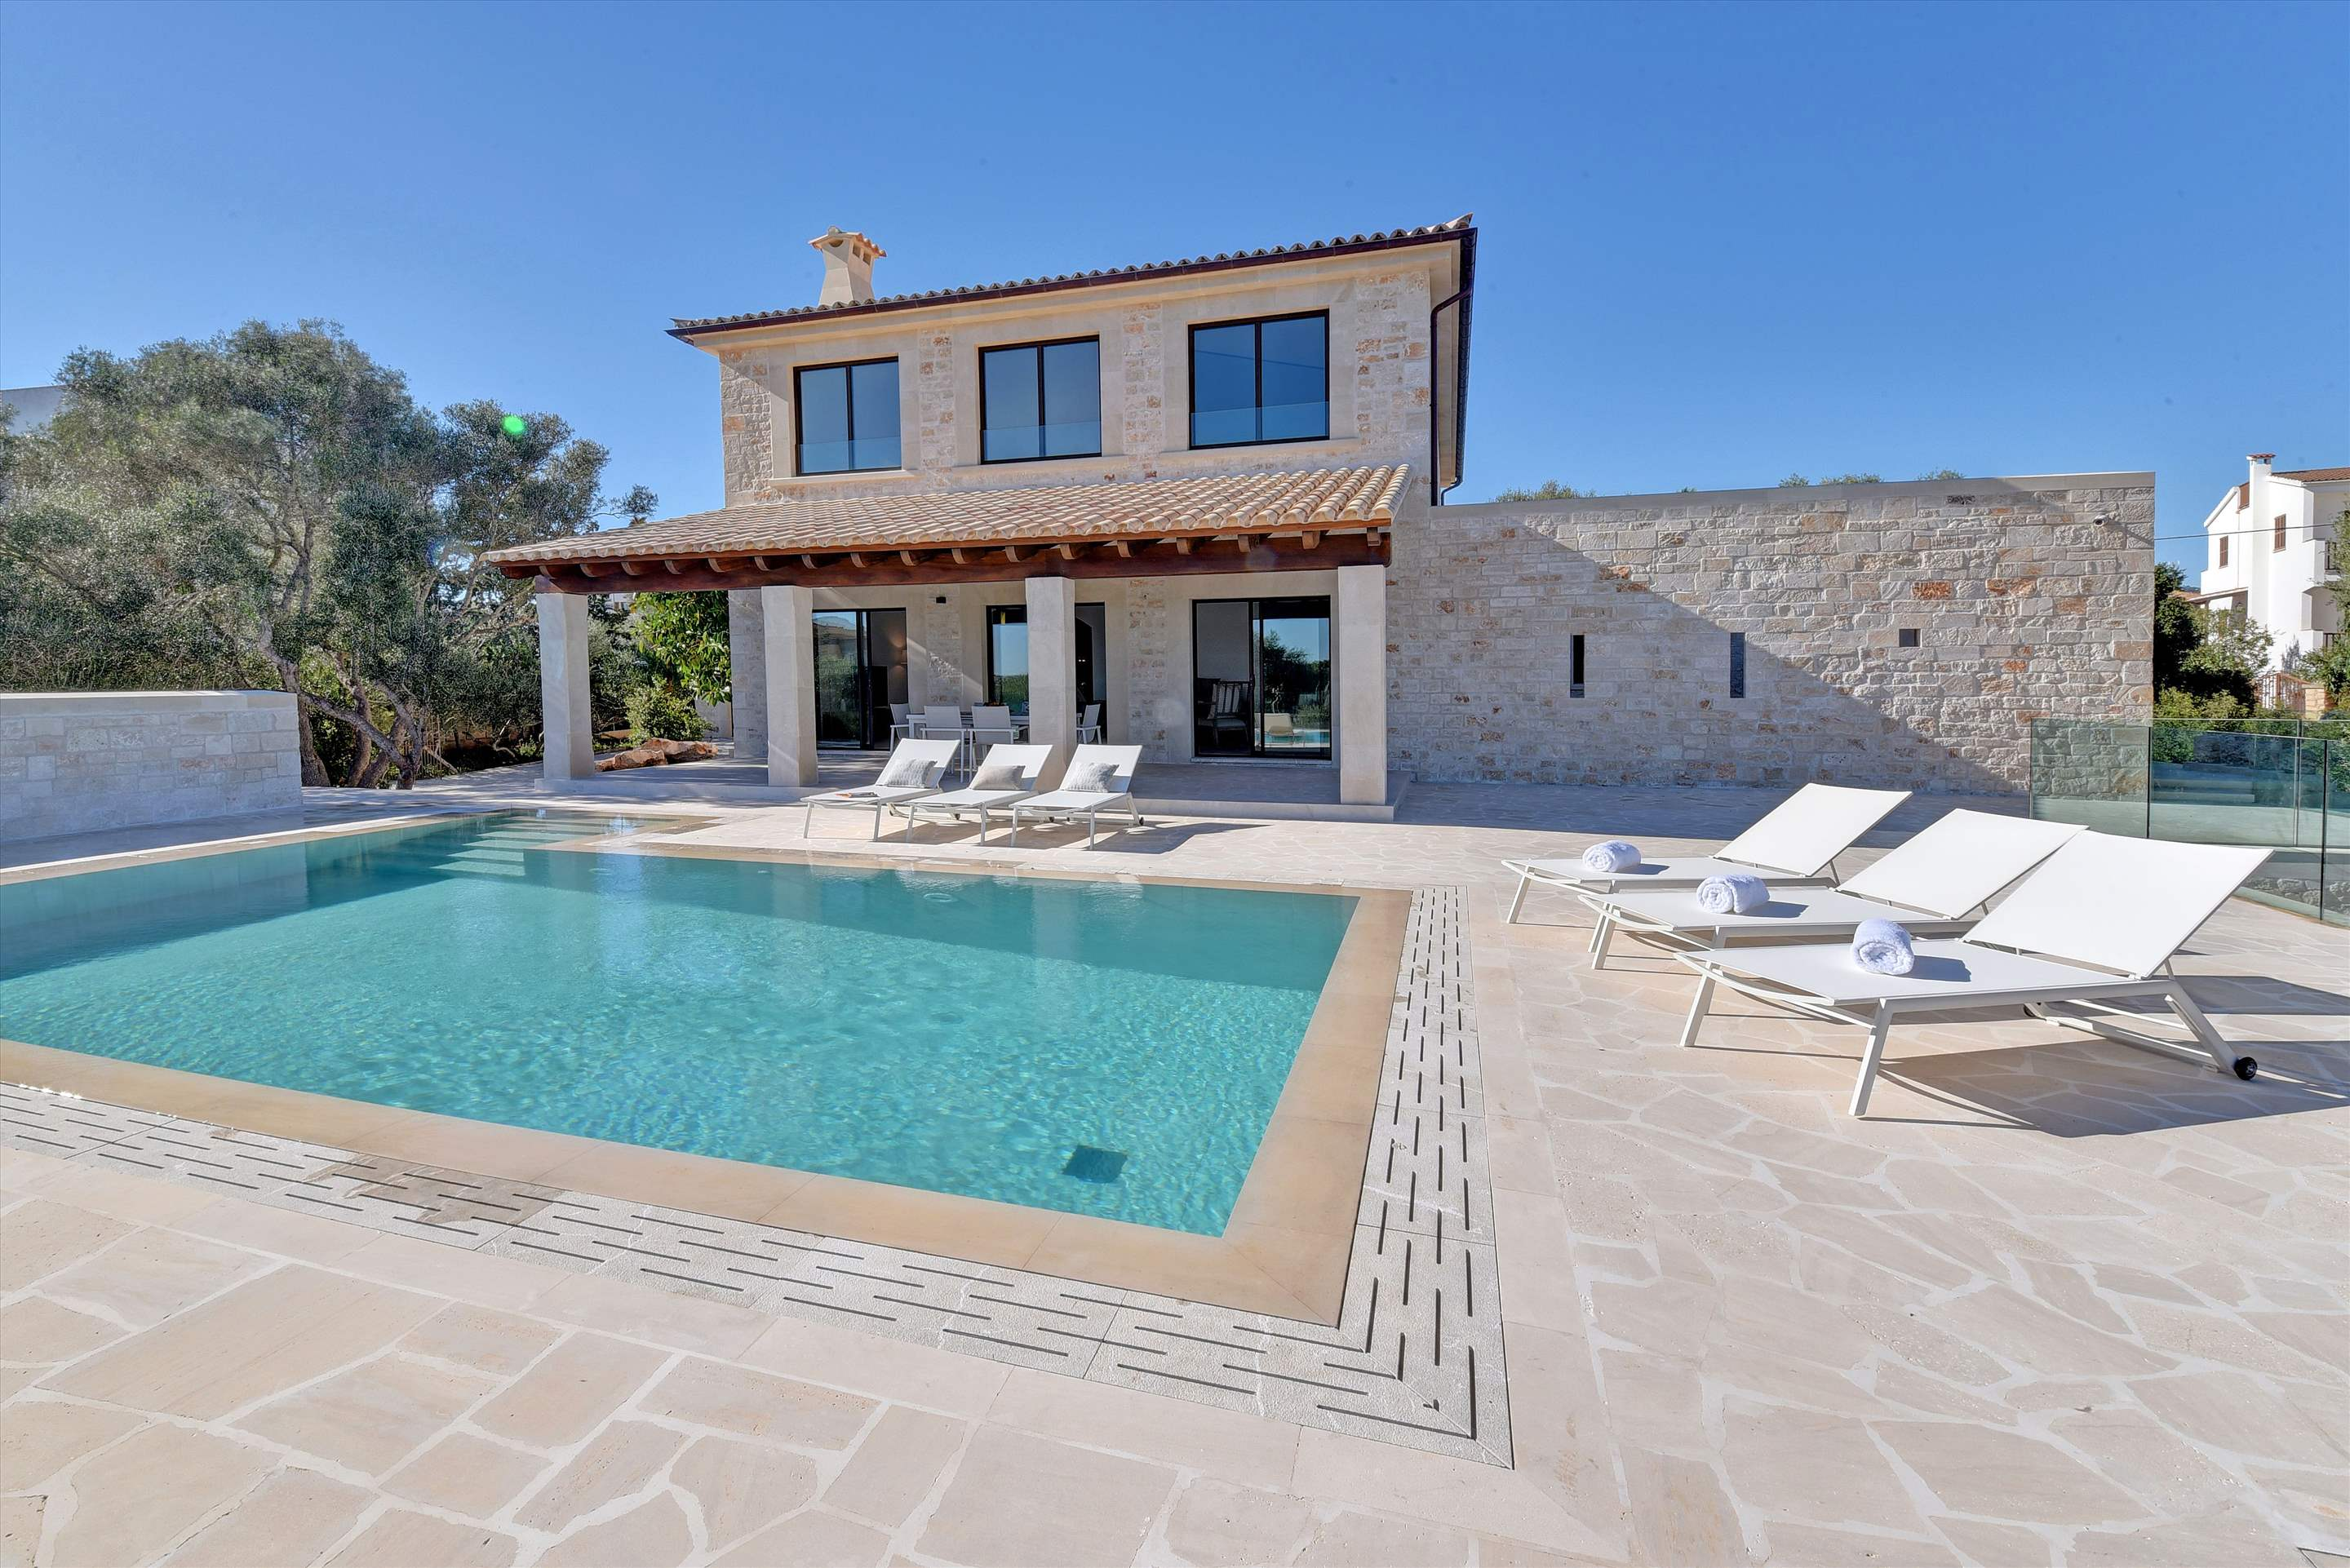 Casa Corso, 3 bedroom villa in Cala d'Or , Majorca